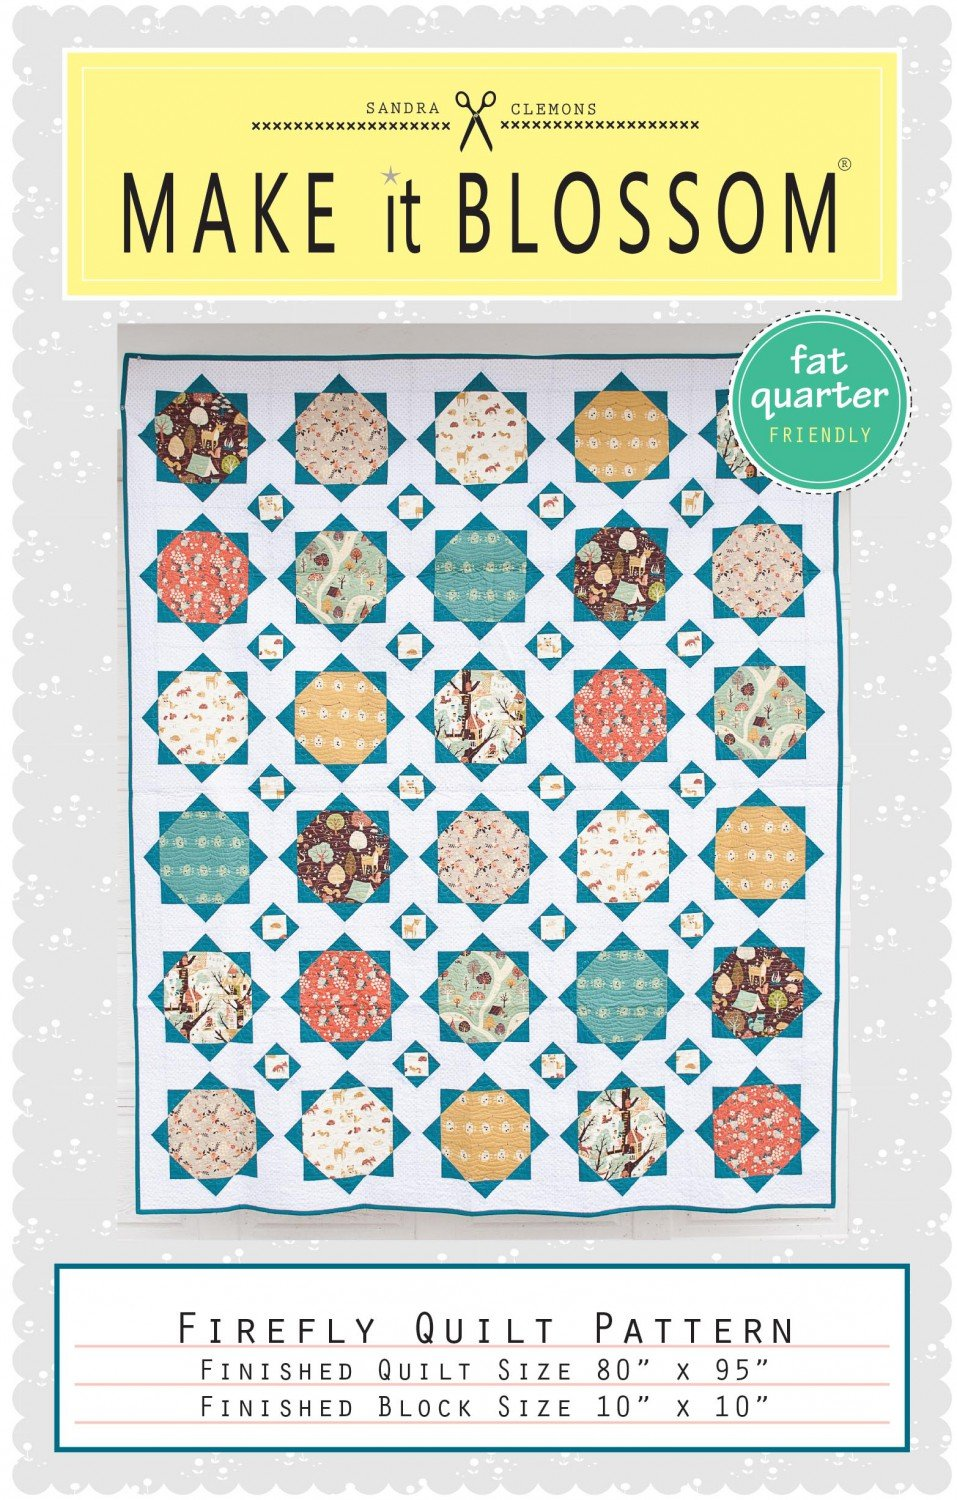 Firefly Quilt pattern